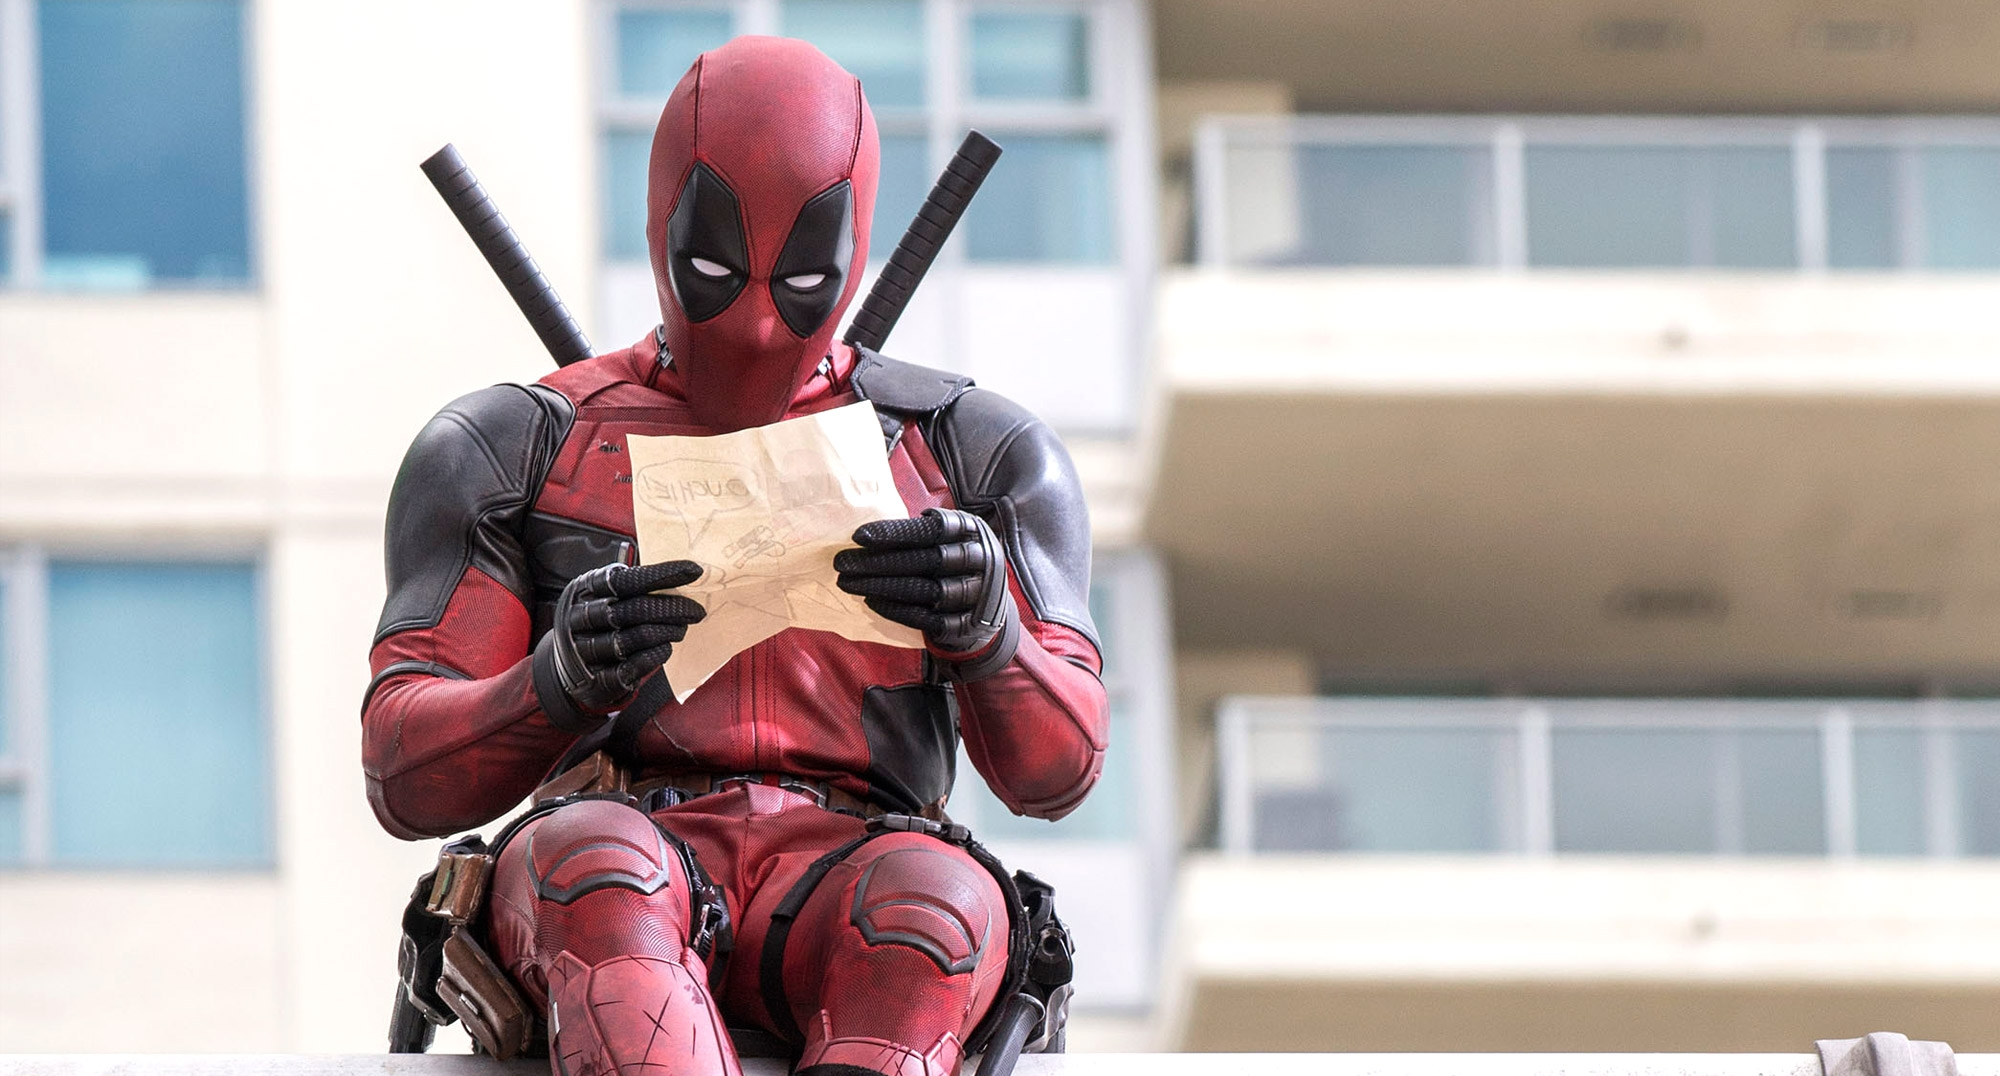 DEADPOOL - Image diverse 4 movie 2016 Ryan Reynolds - Go with the Blog